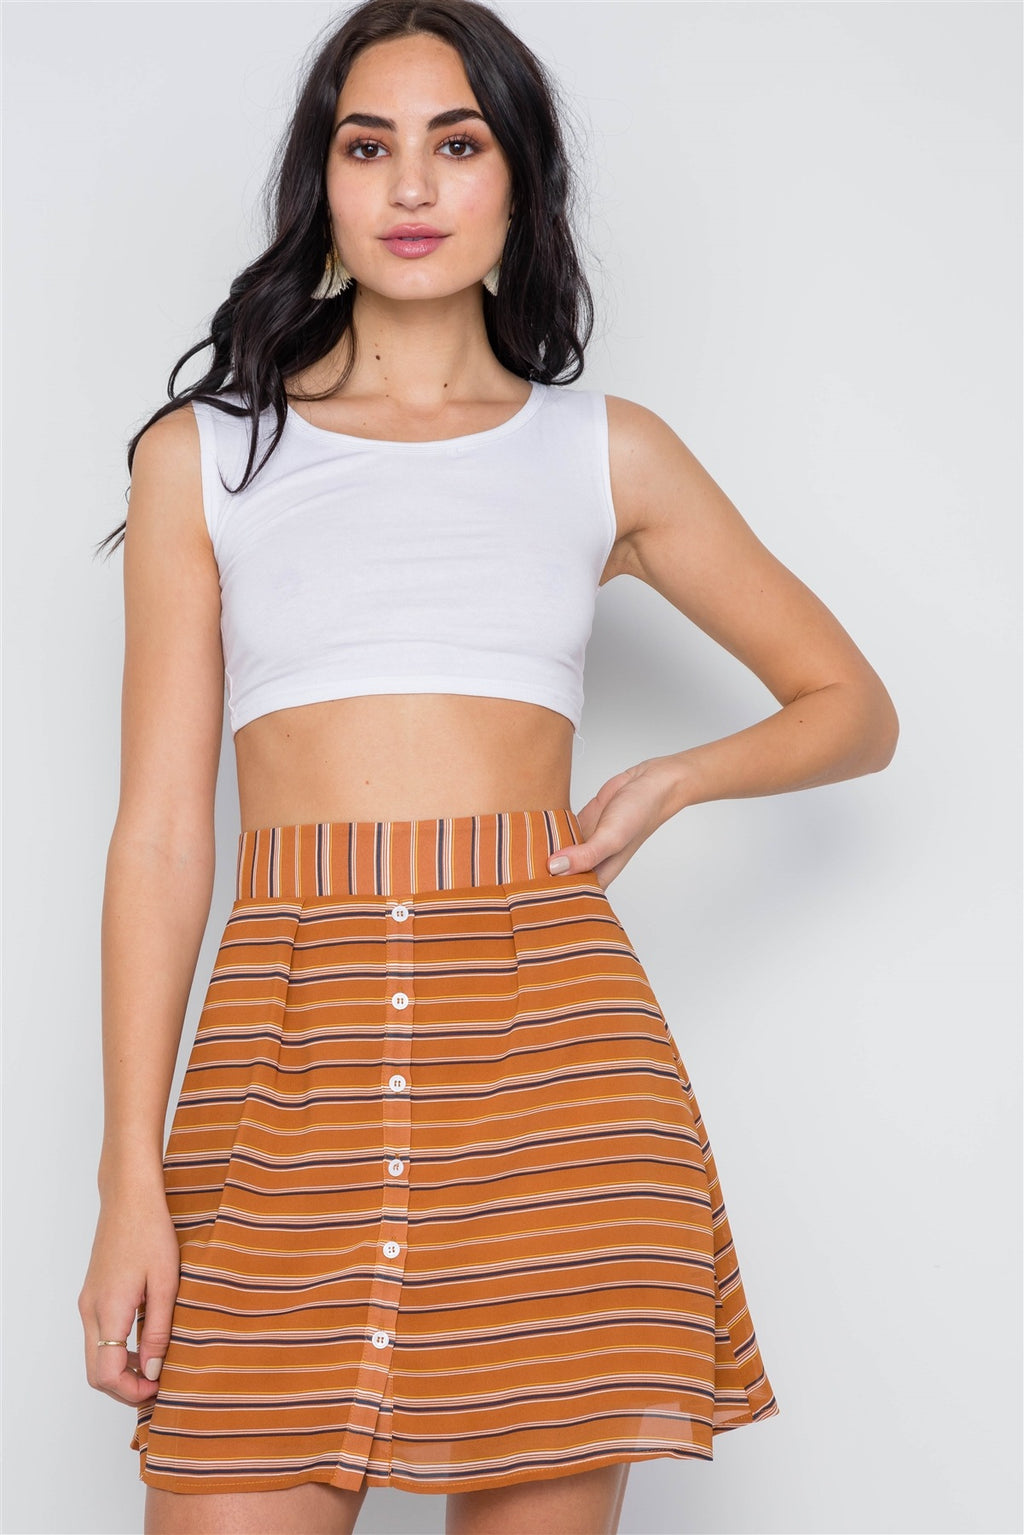 Carime High Waist Mini Skirt